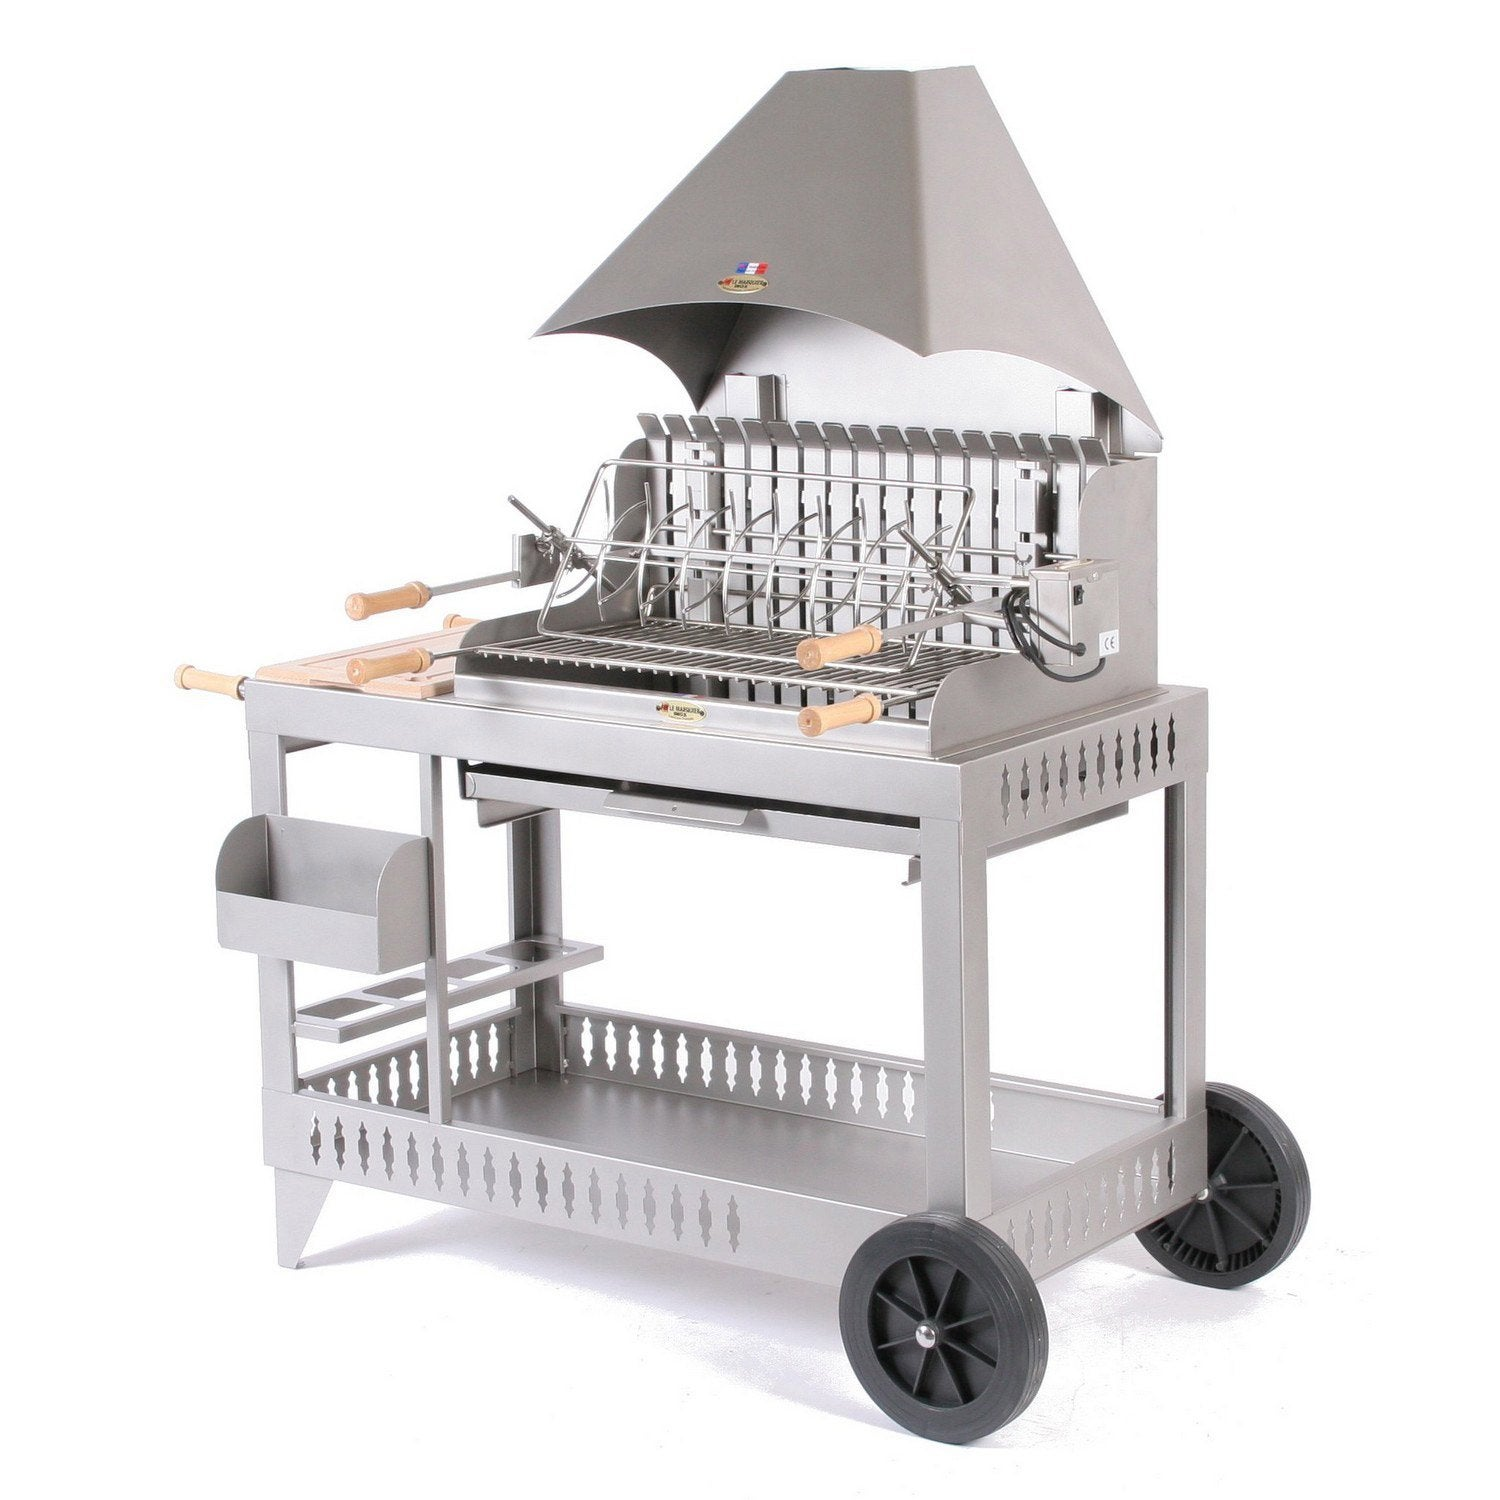 Barbecue au charbon de bois lemarquier isturitz inox for Barbecue le roy merlin